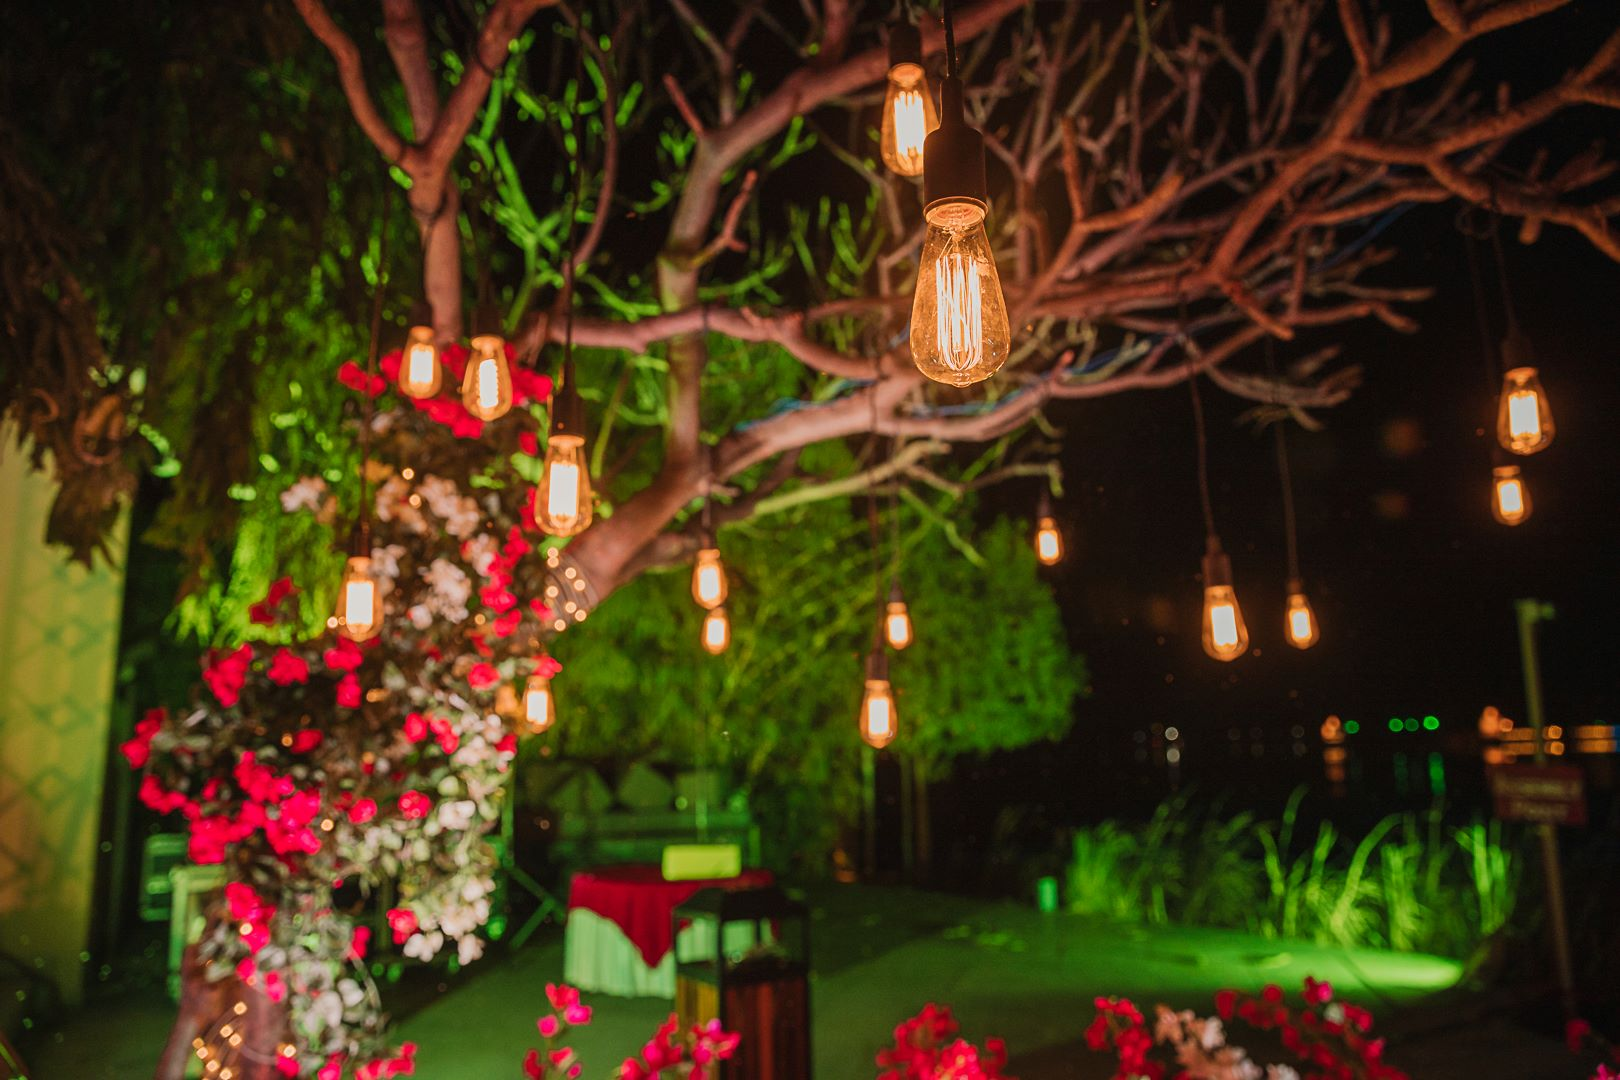 lights and flowers outdoor decor